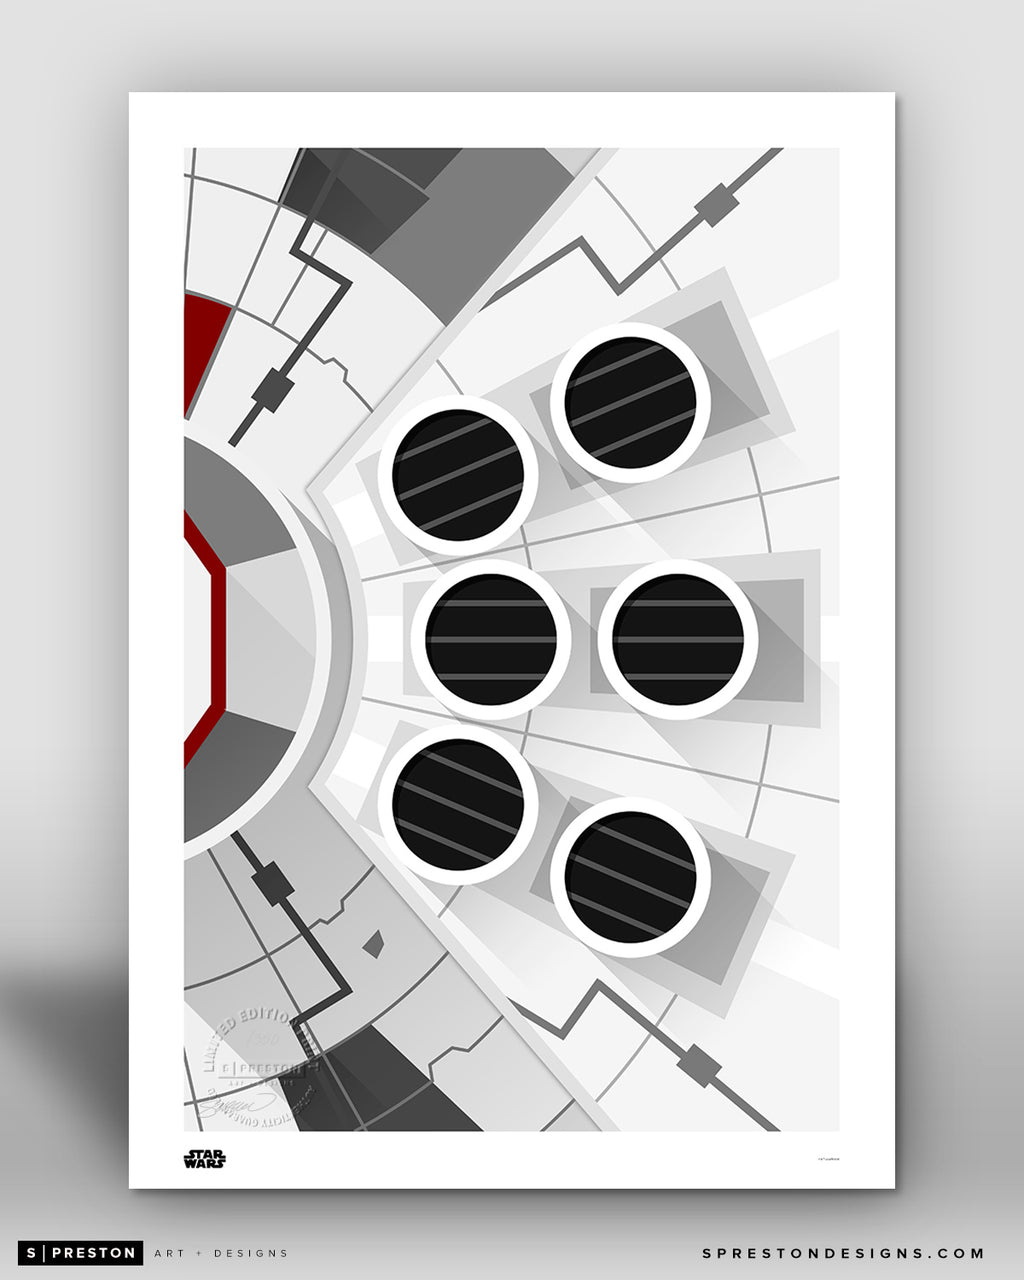 Minimalist Millennium Falcon - Star Wars - S. Preston